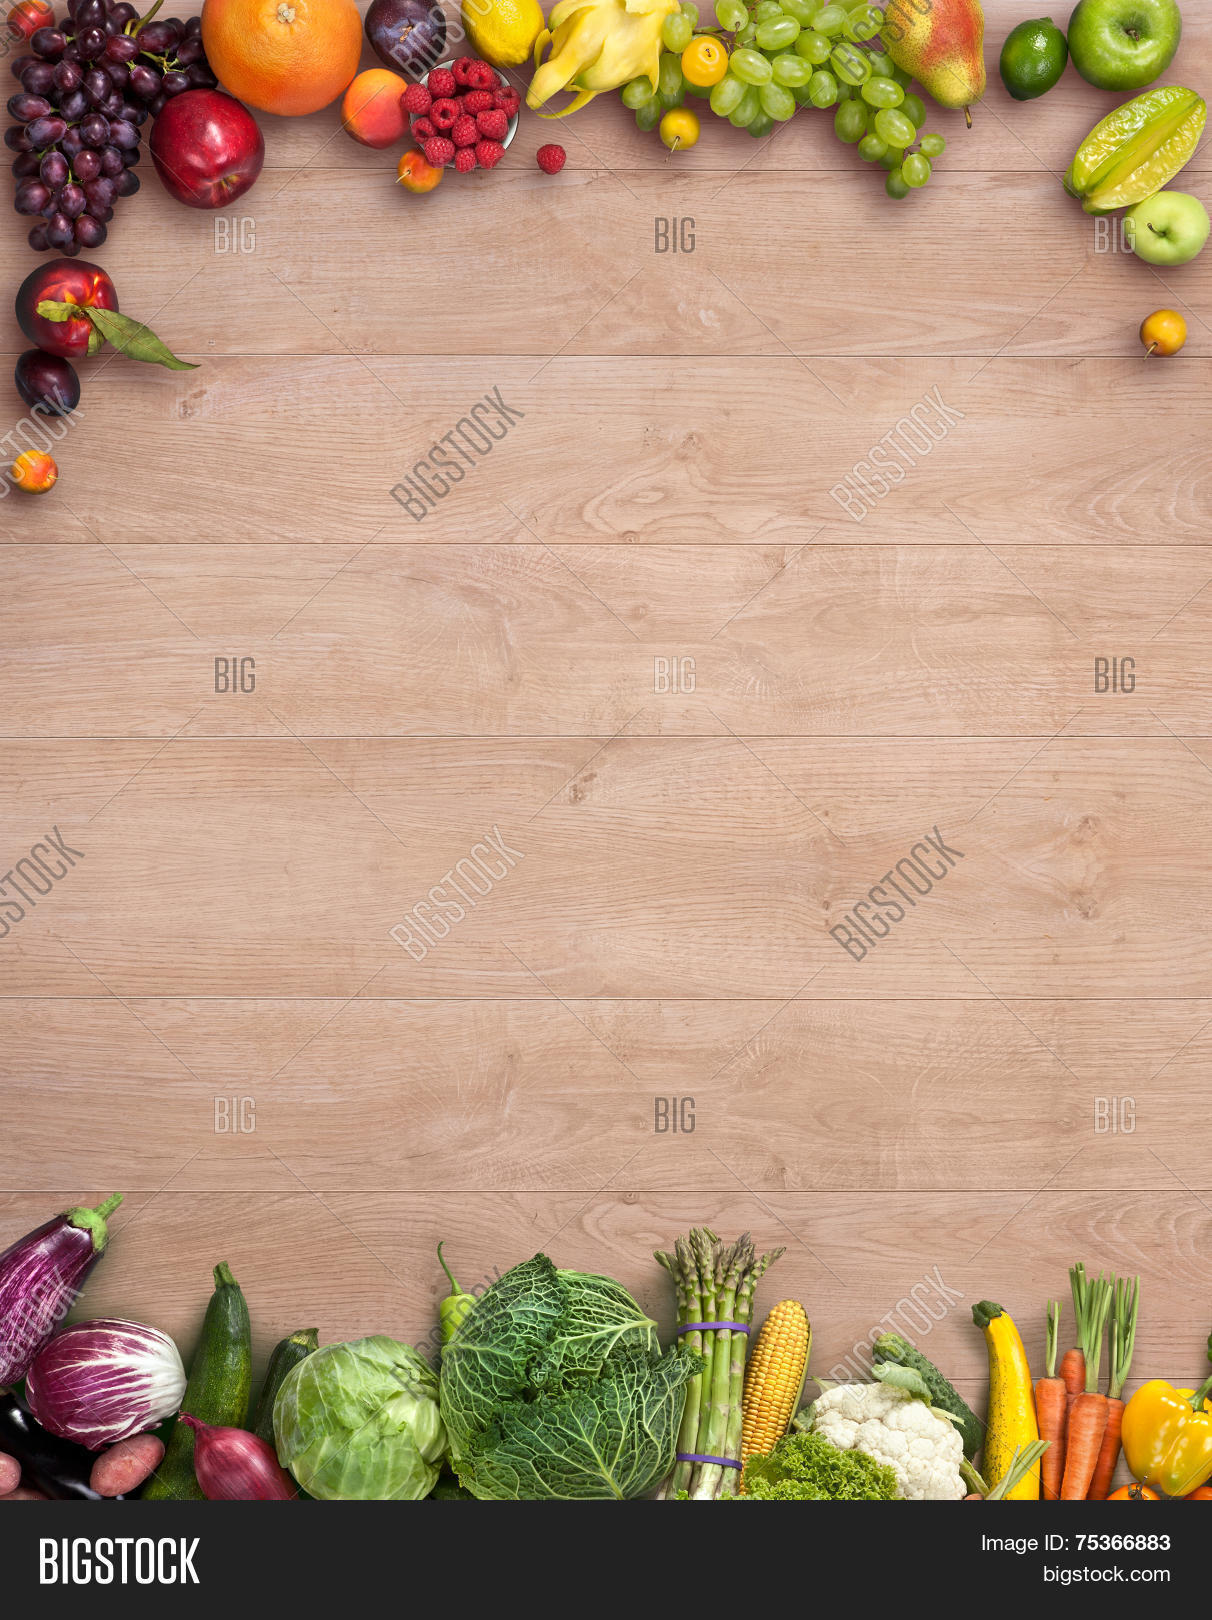 Healthy Food Background Image & Photo | Bigstock